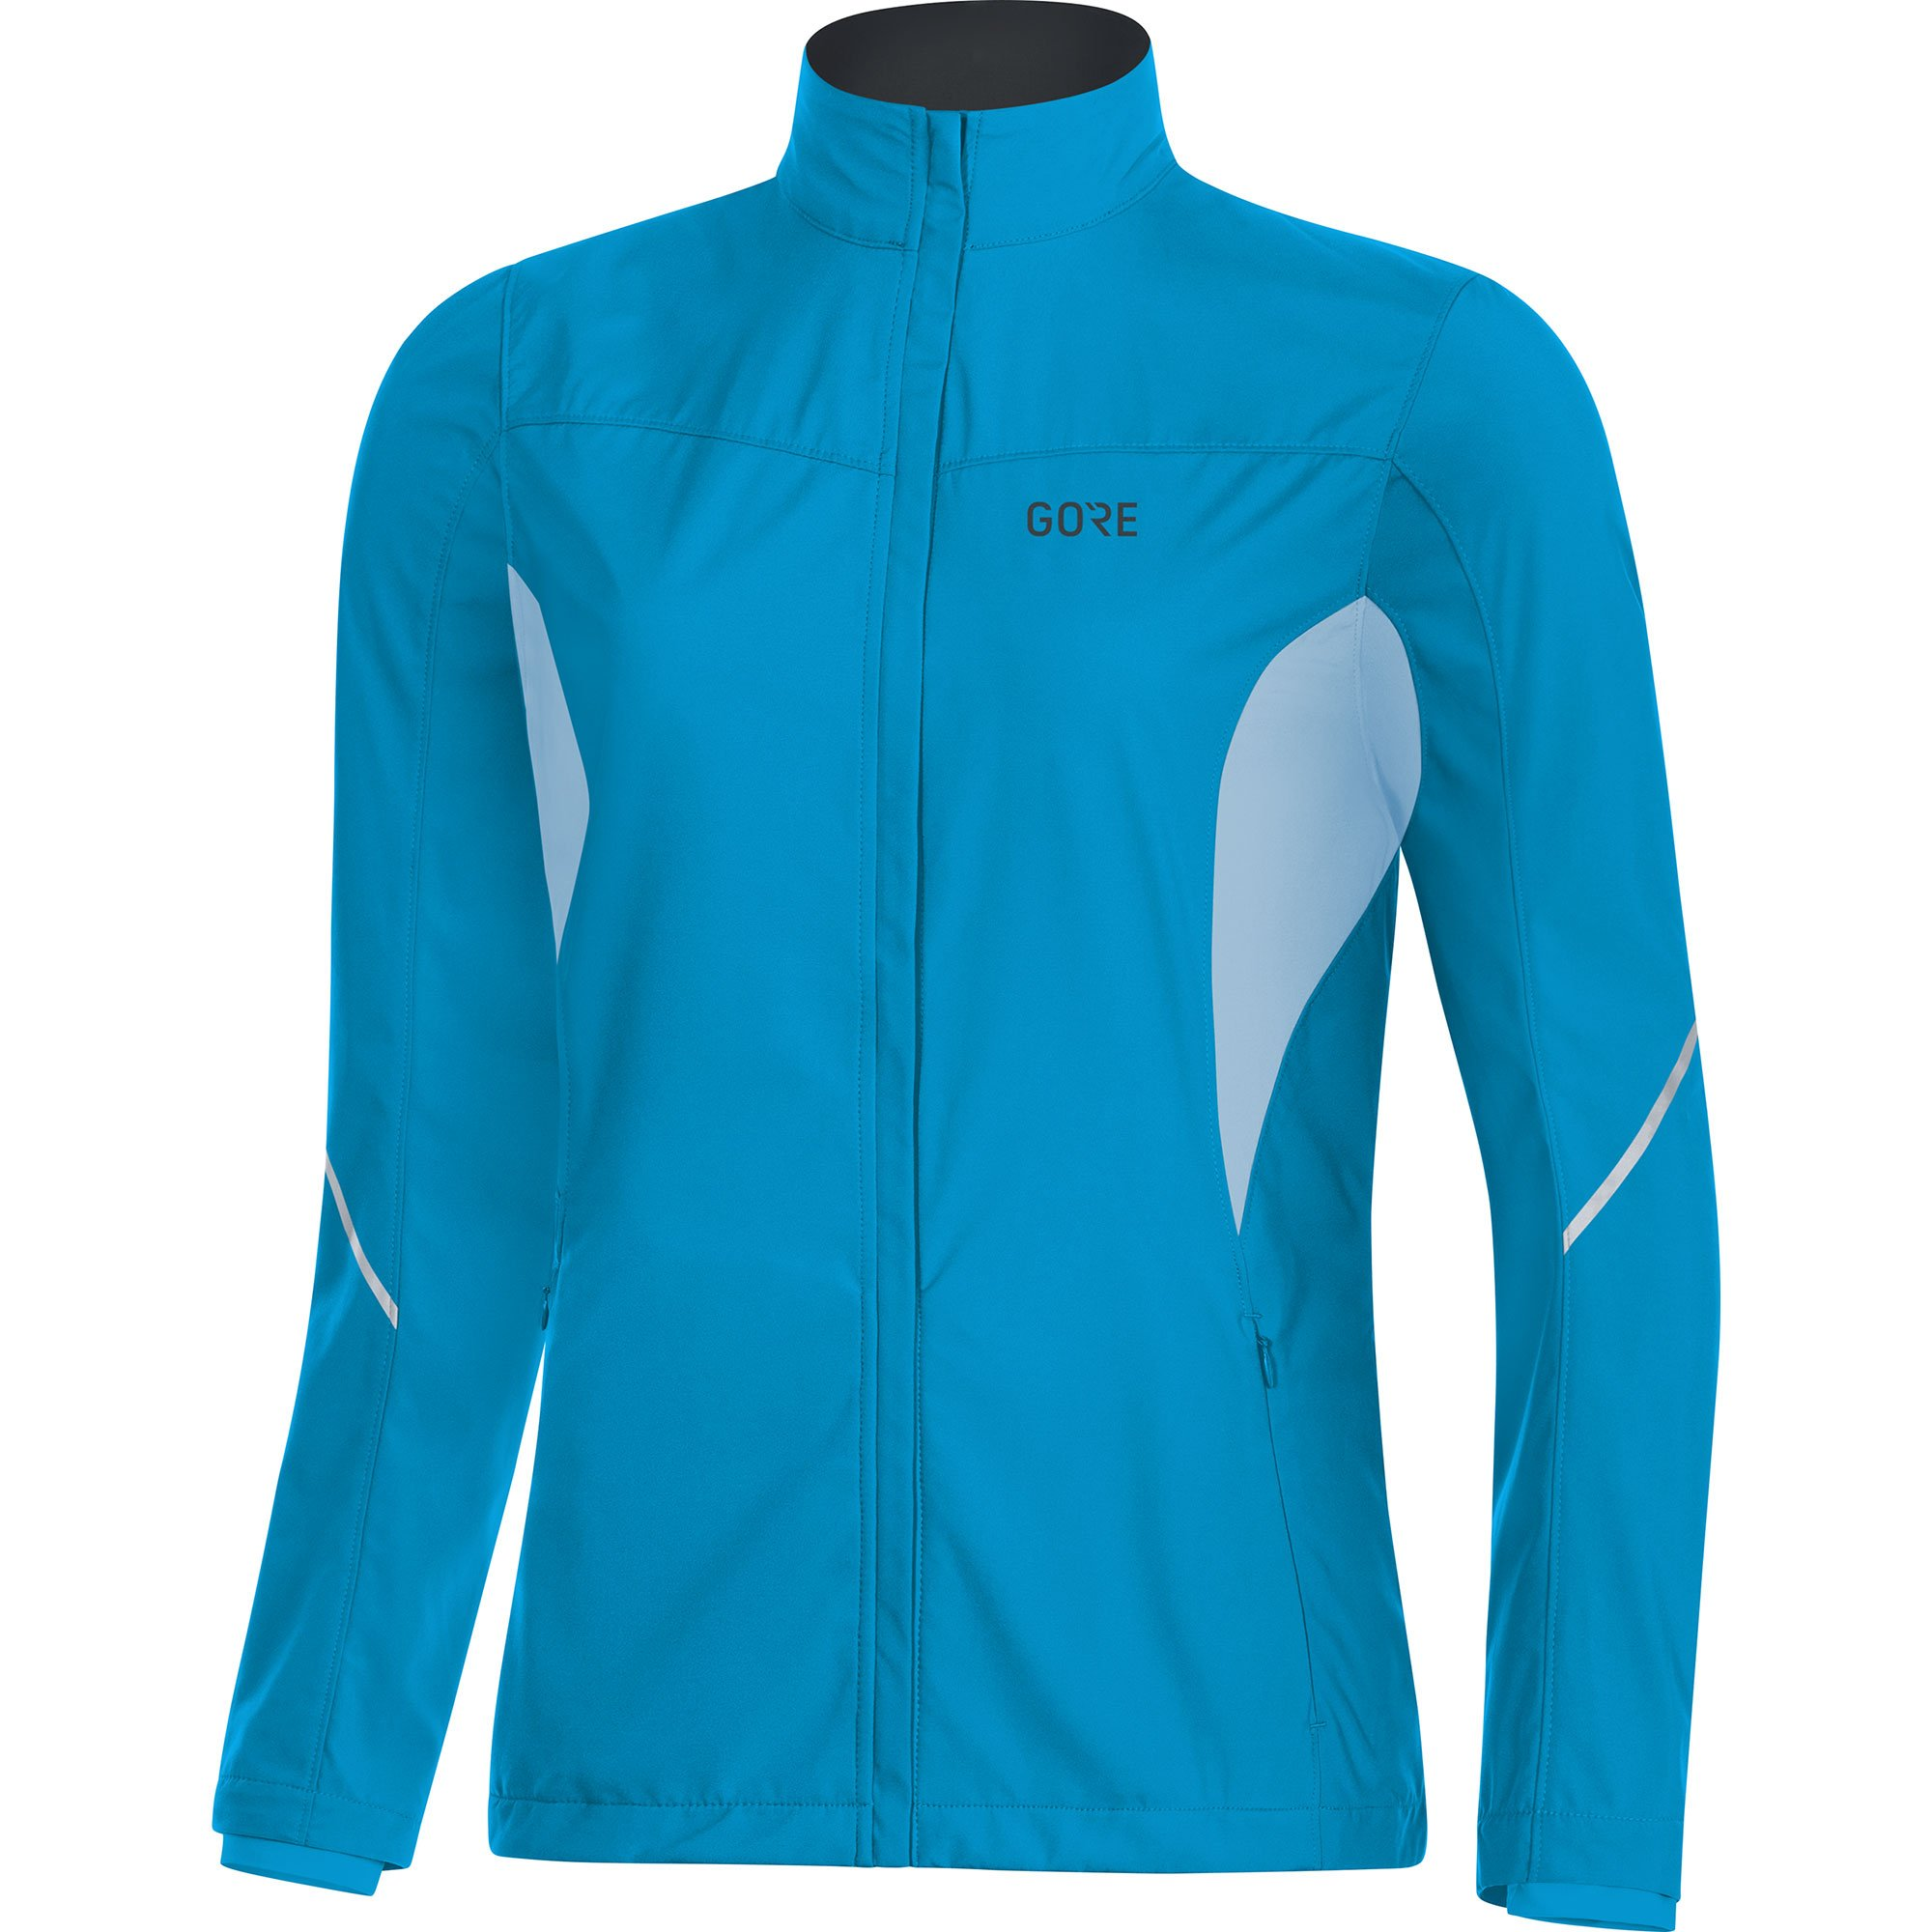 GORE WEAR Women's Windproof Running Jacket, R3 Women's Partial Windstopper Jacket, Size: S, Color: Dynamic Cyan/Ciel Blue, 100081